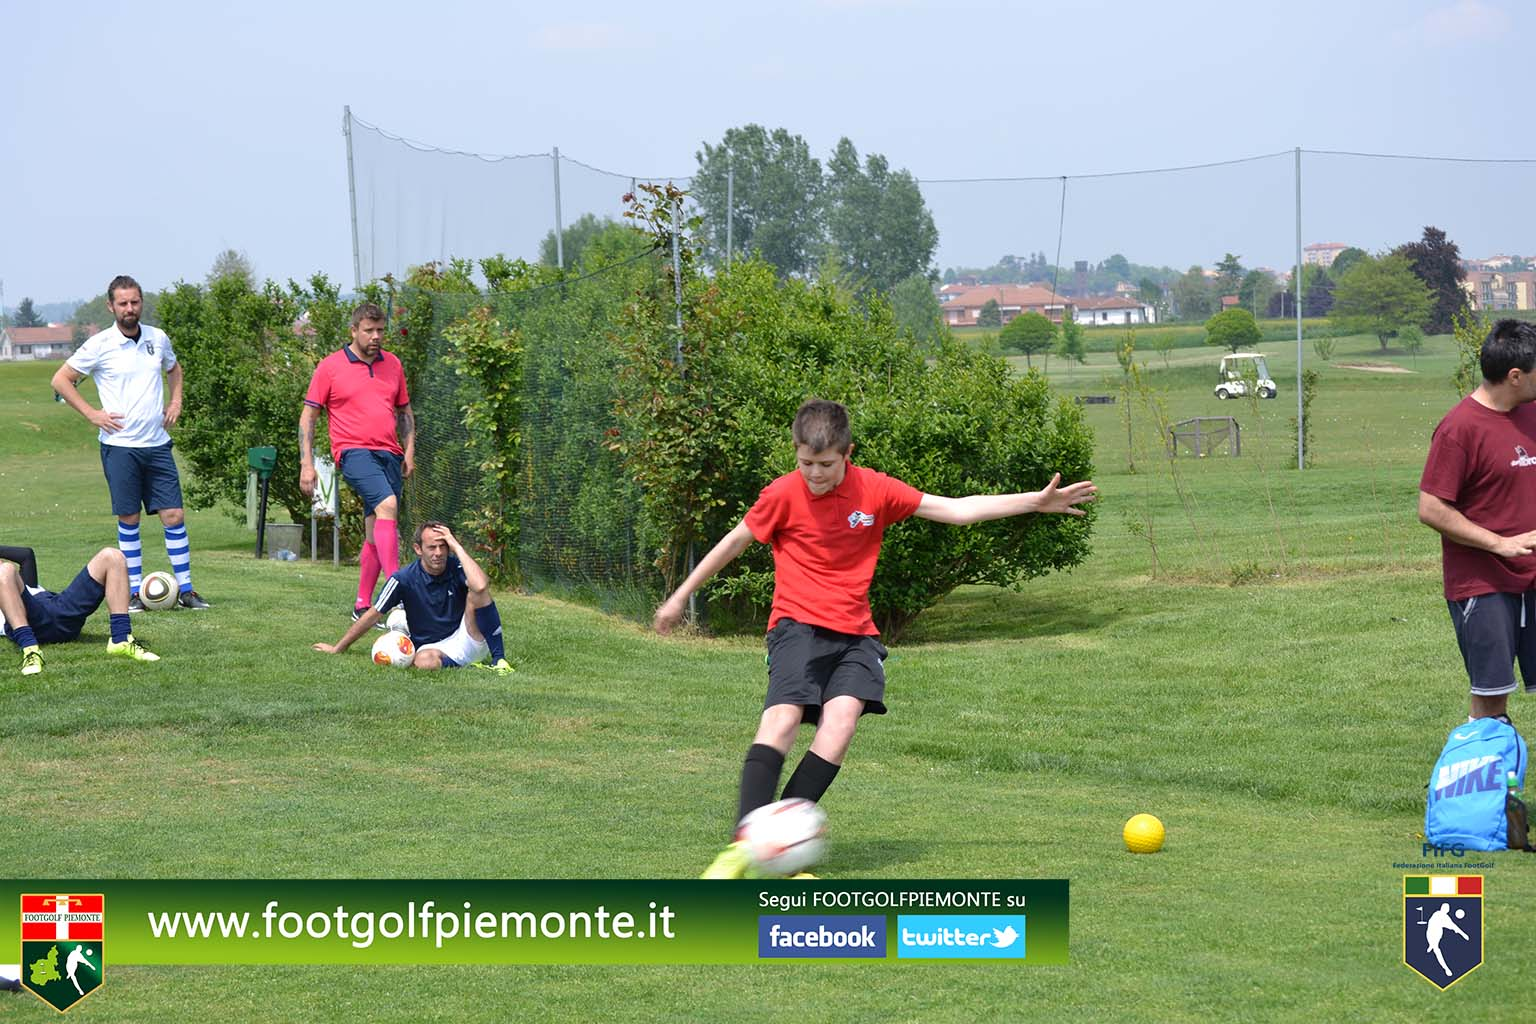 FOTO 9 Regions' Cup Footgolf Piemonte 2016 Golf Città di Asti (At) 30apr16-83